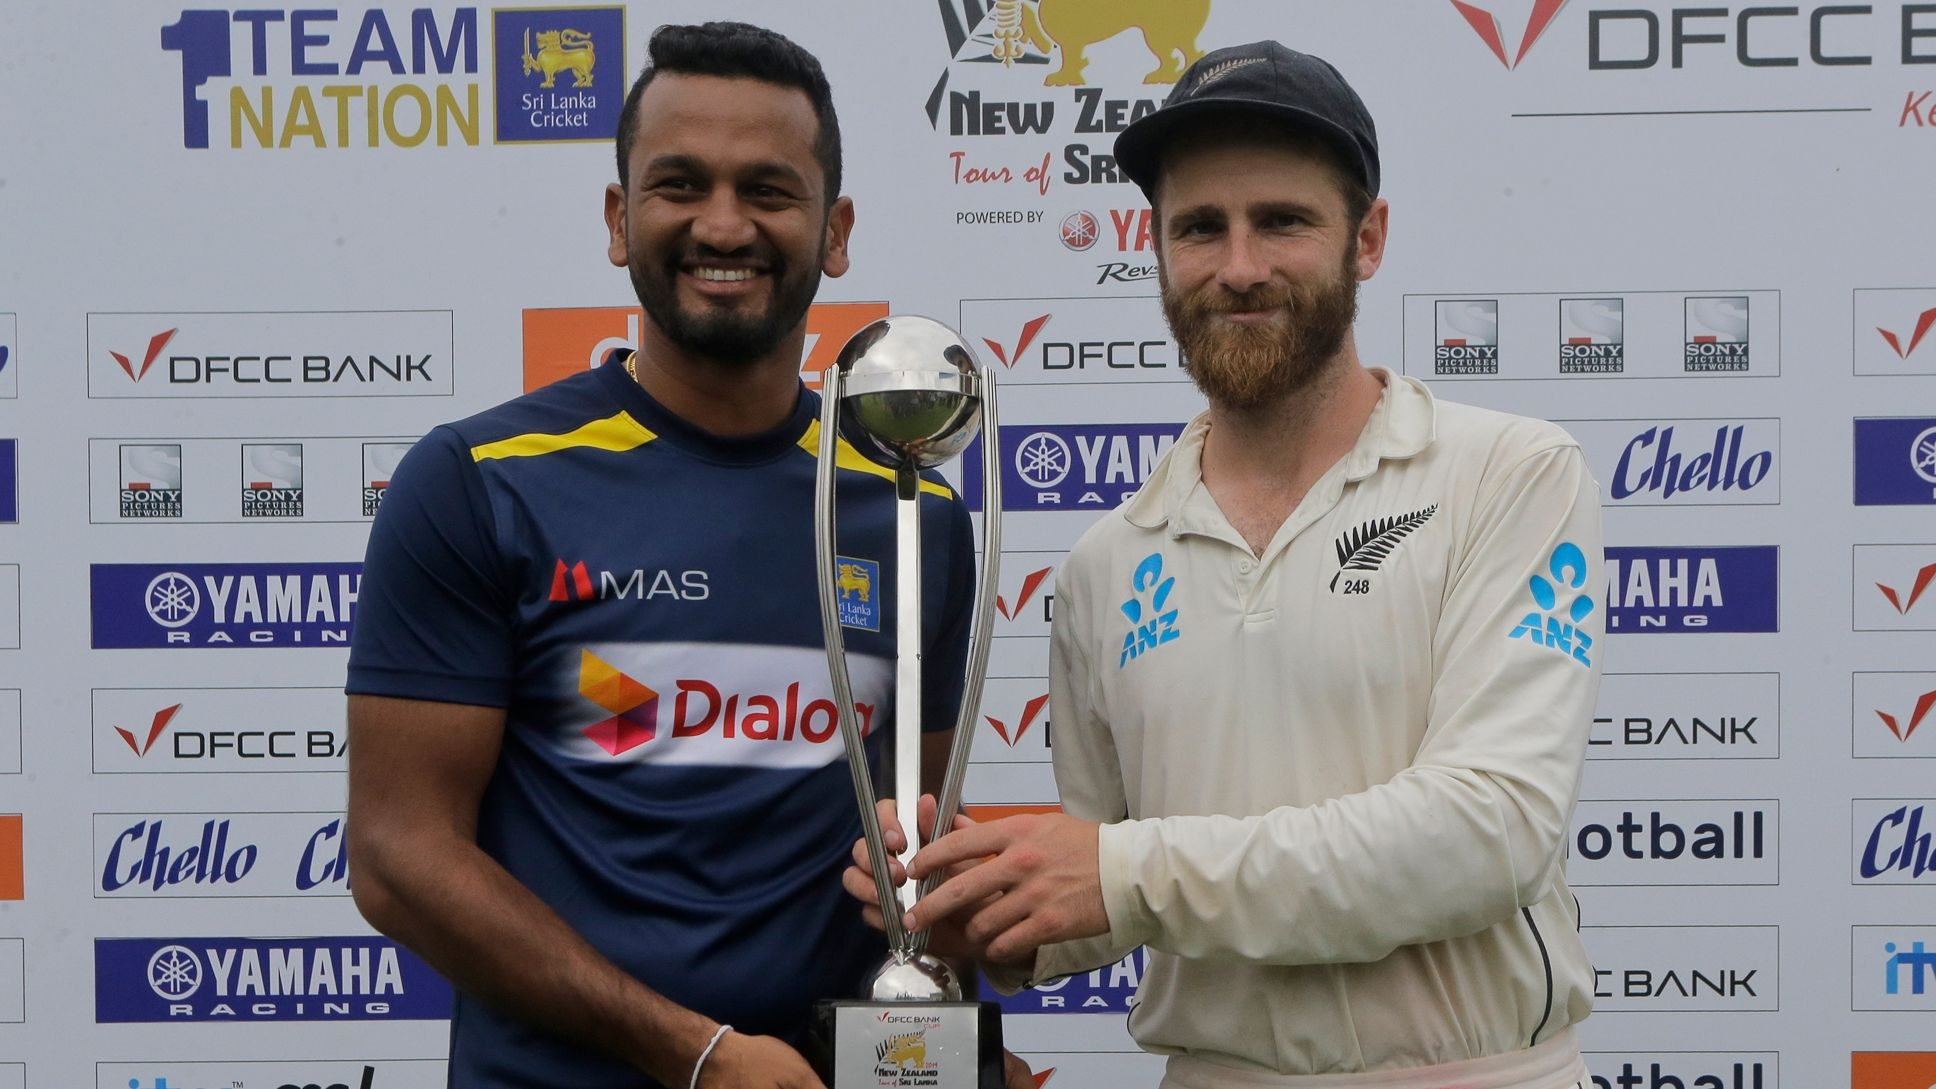 New Zealand Beat Lanka by Innings & 65 Runs, Series Ends in a Draw